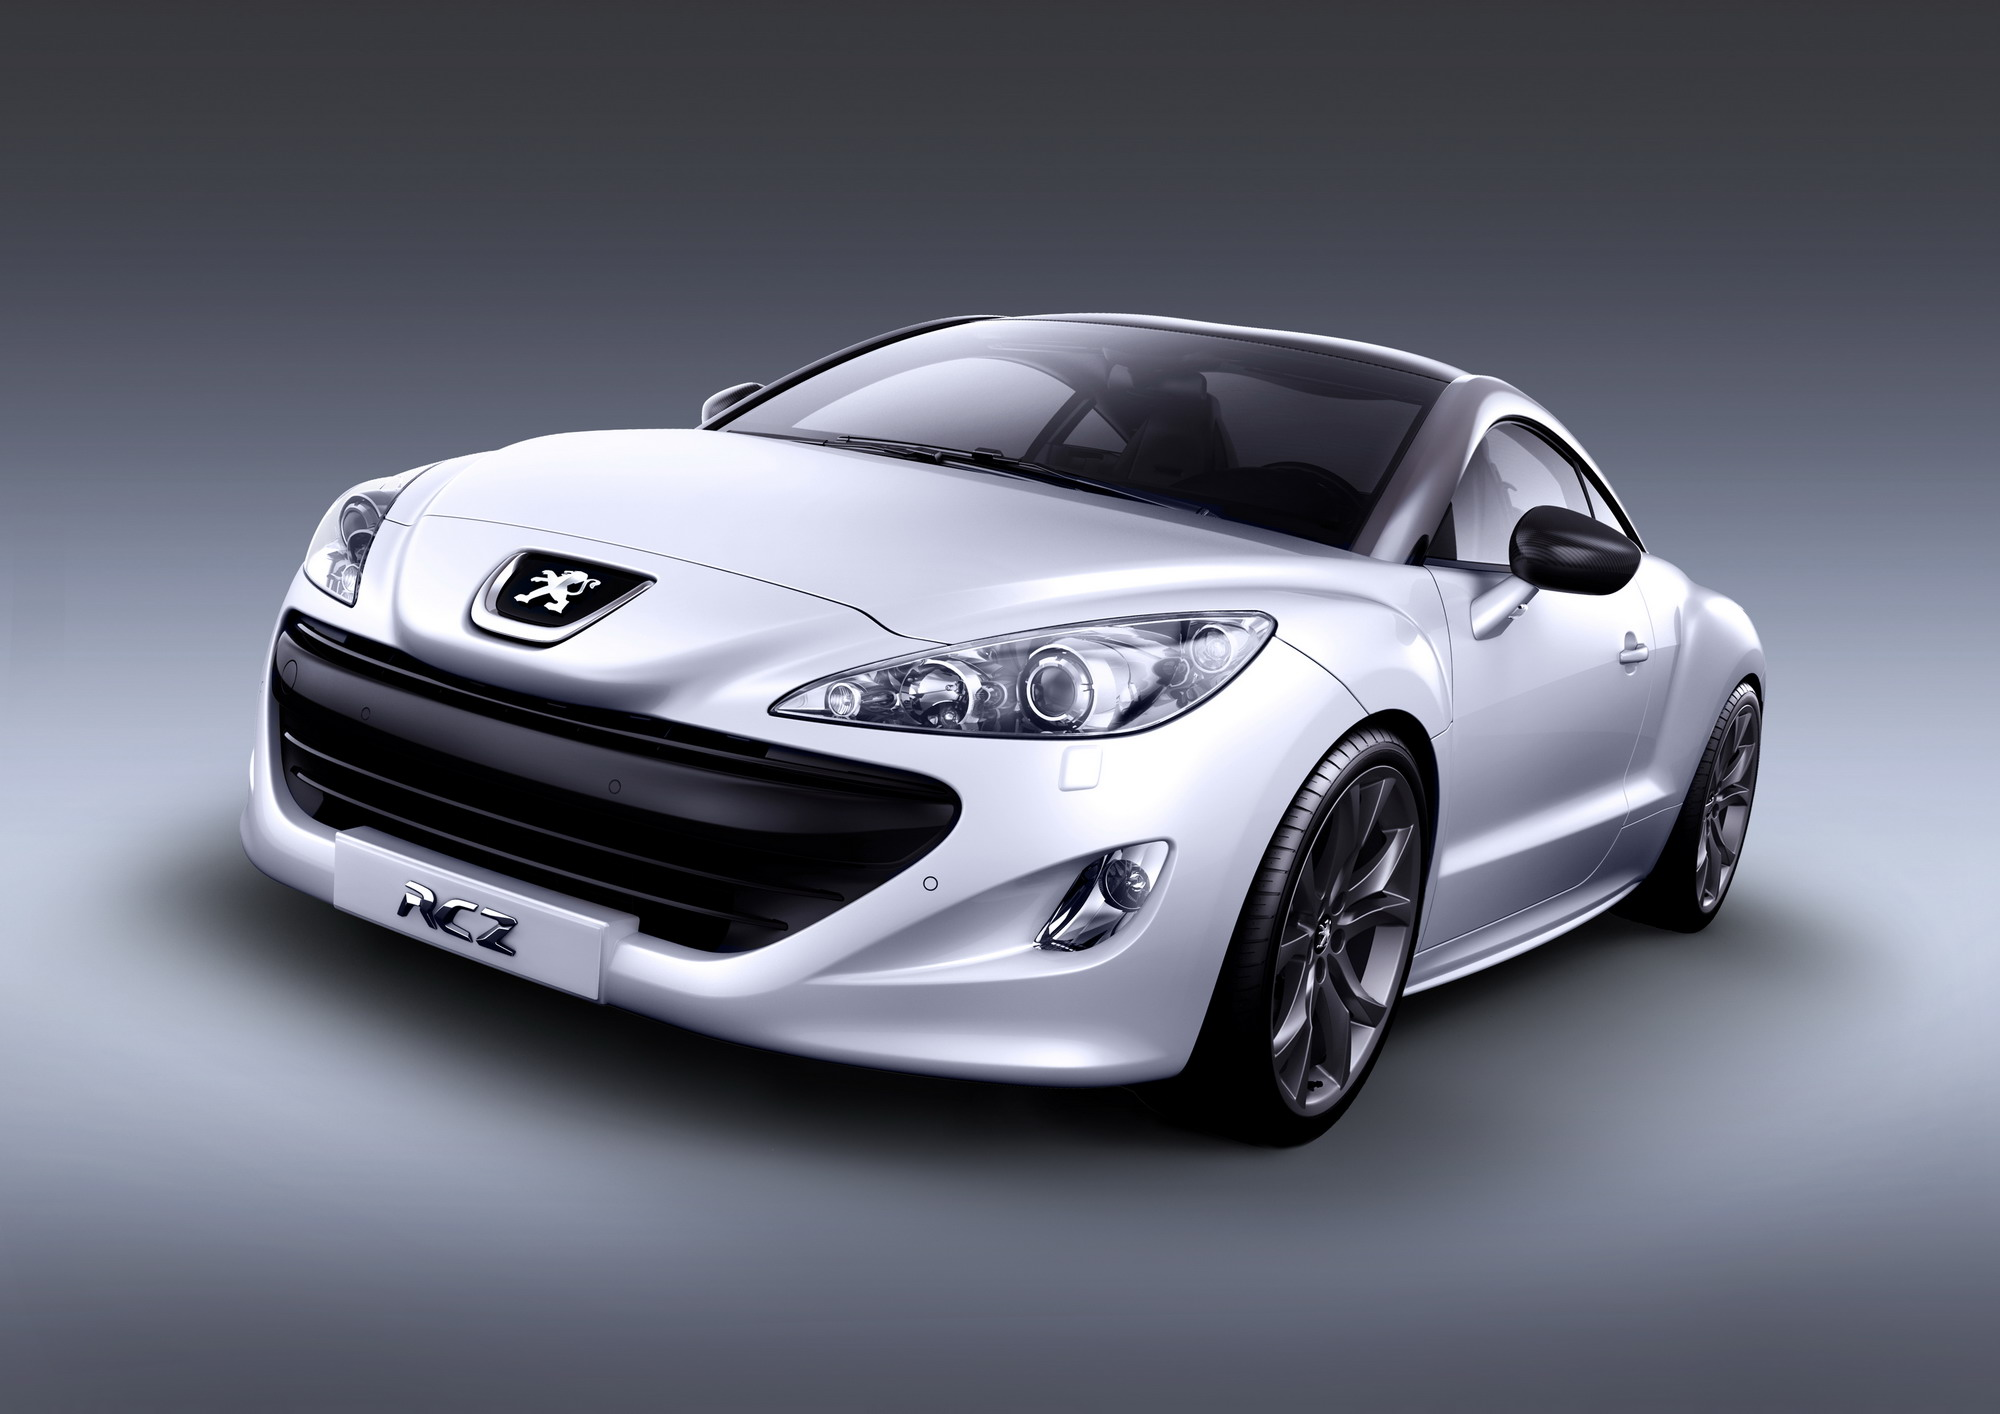 2010 peugeot rcz limited edition review top speed. Black Bedroom Furniture Sets. Home Design Ideas